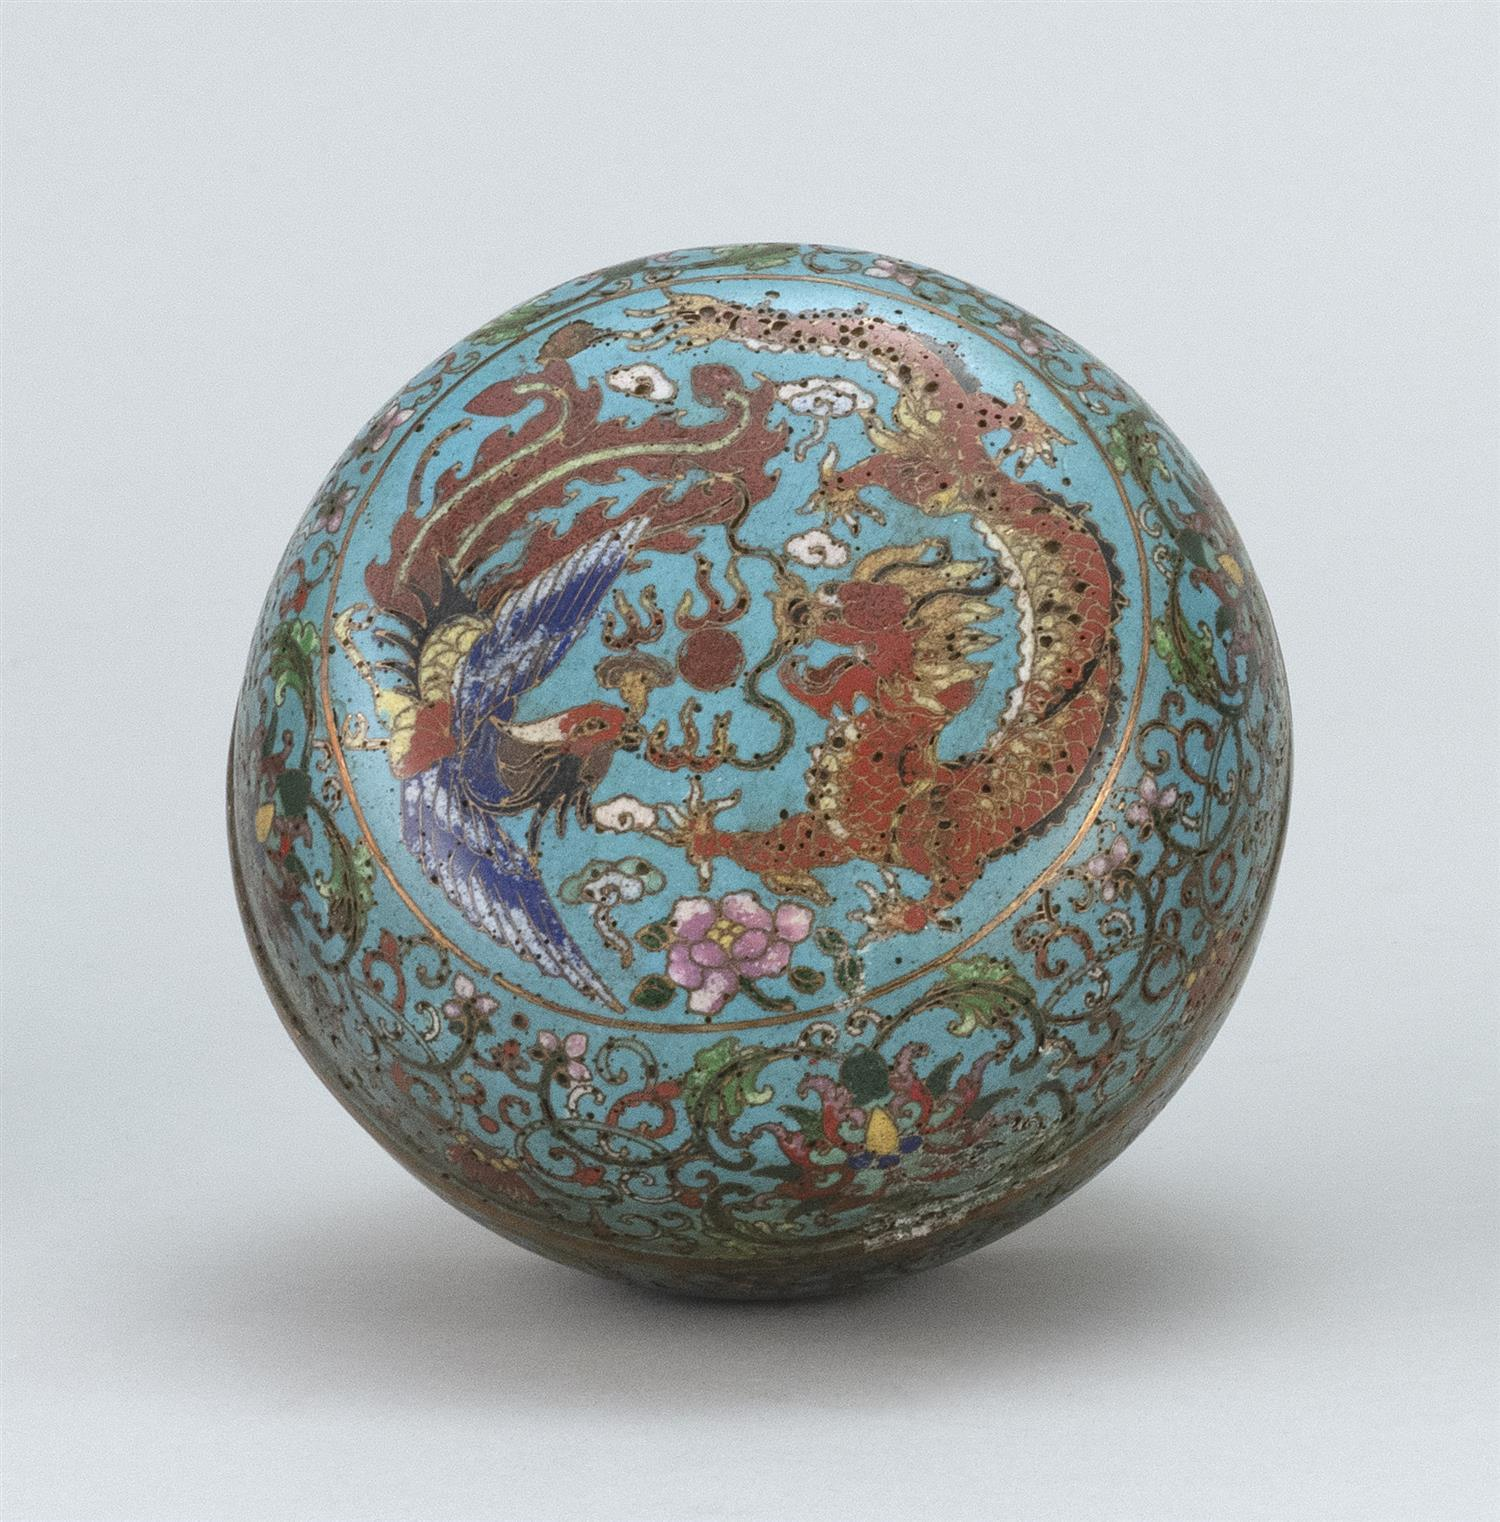 CHINESE CLOISONNÉ ENAMEL BOX In ovoid form, with phoenix and dragon design on a blue passionflower ground. Four-character Qilong mar...